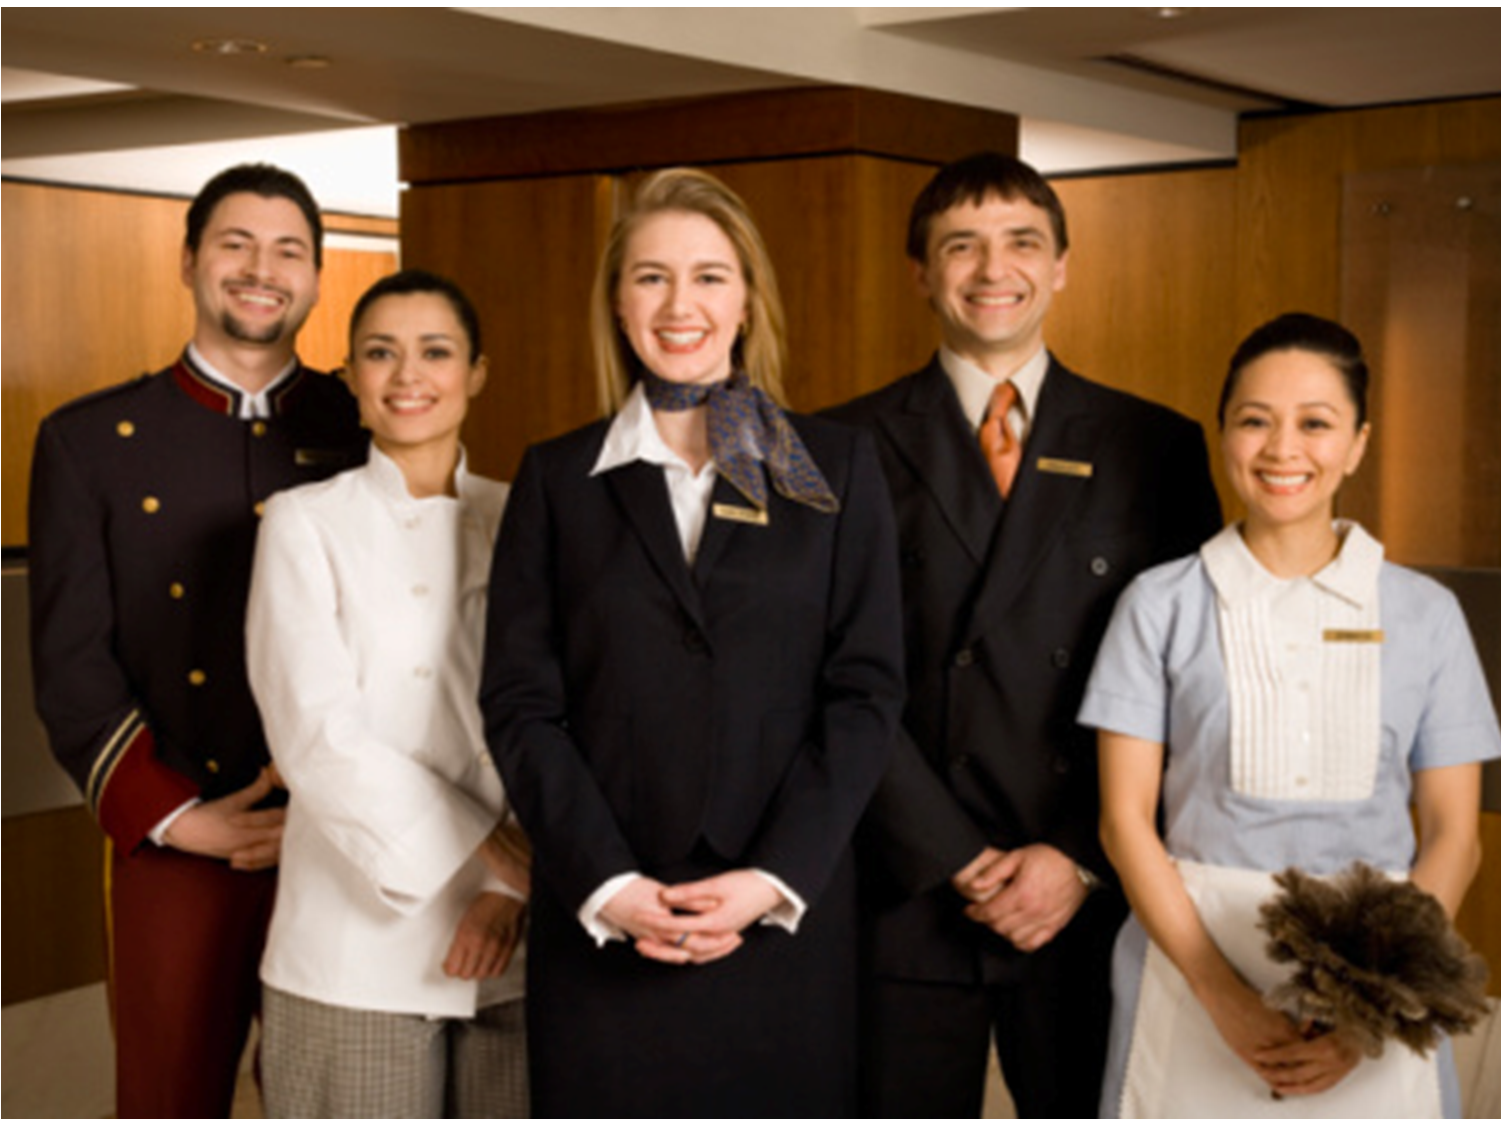 the most exciting st century jobs employment advices blog hospitality jobs on the rise